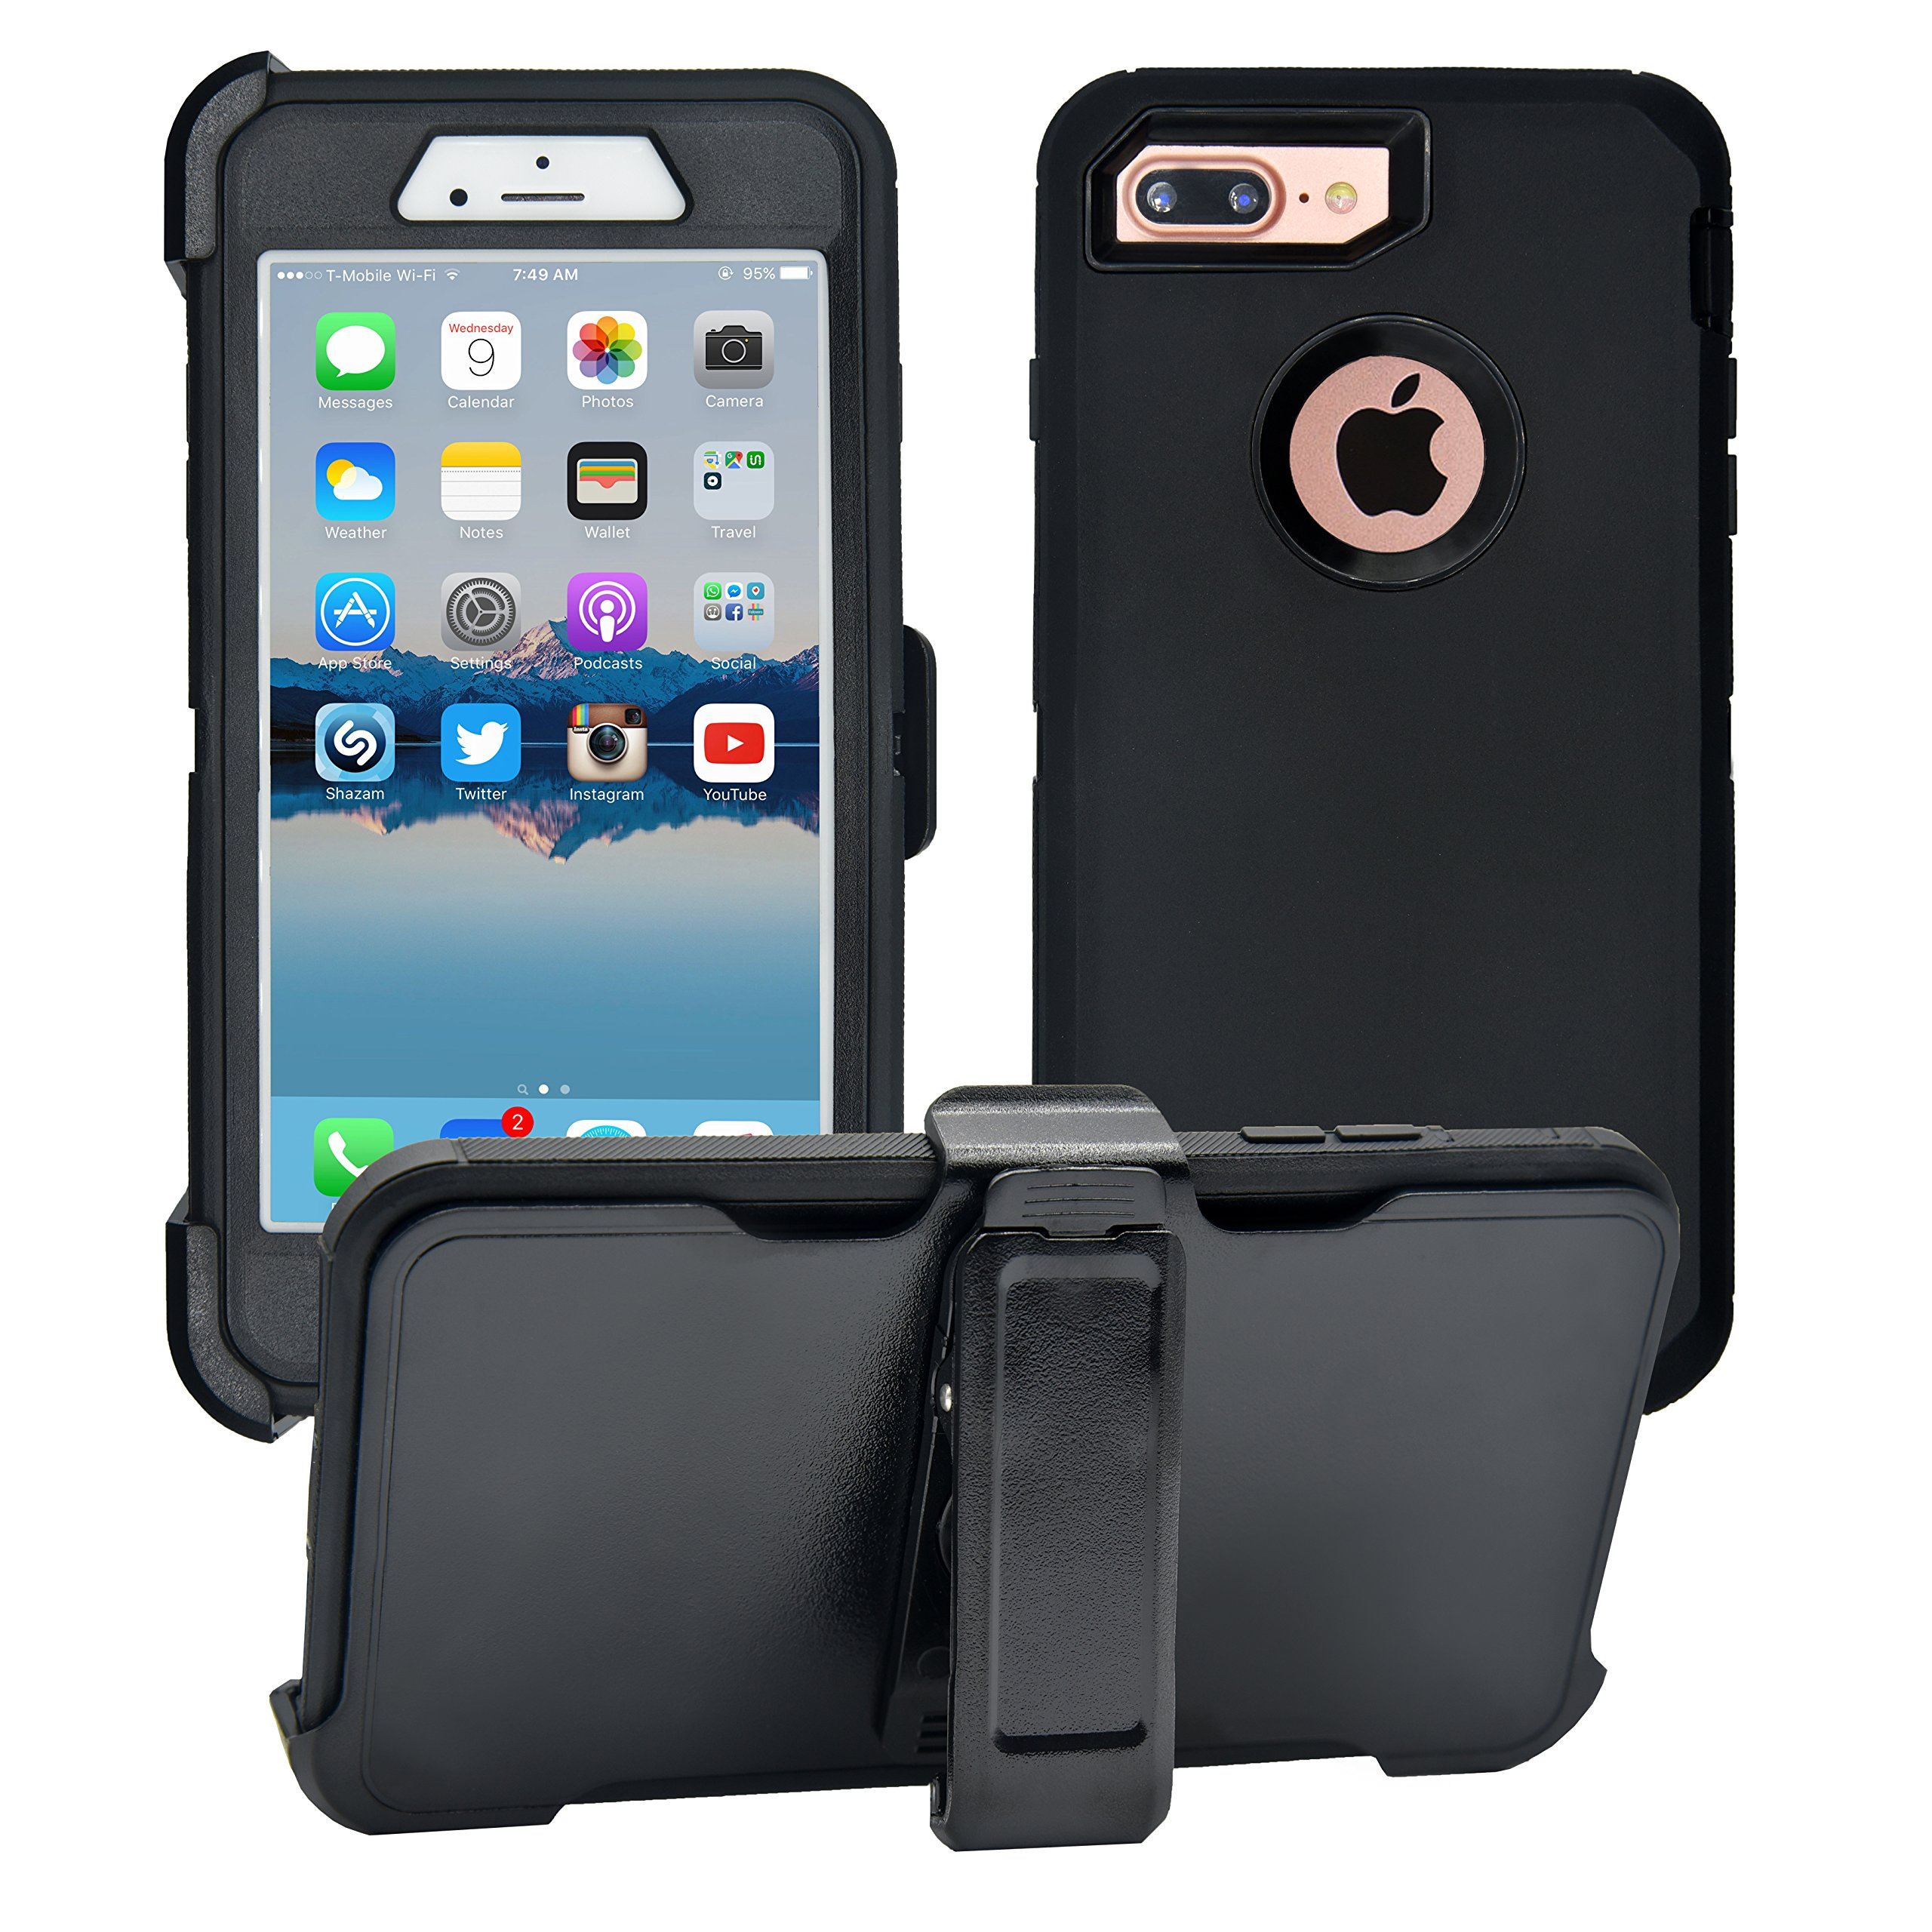 iPhone 7 Plus / 8 Plus Cover | 2-in-1 Screen Protector & Holster Case | Full Body, Military Grade Edge-to-Edge Protection with carrying belt clip Black / Black